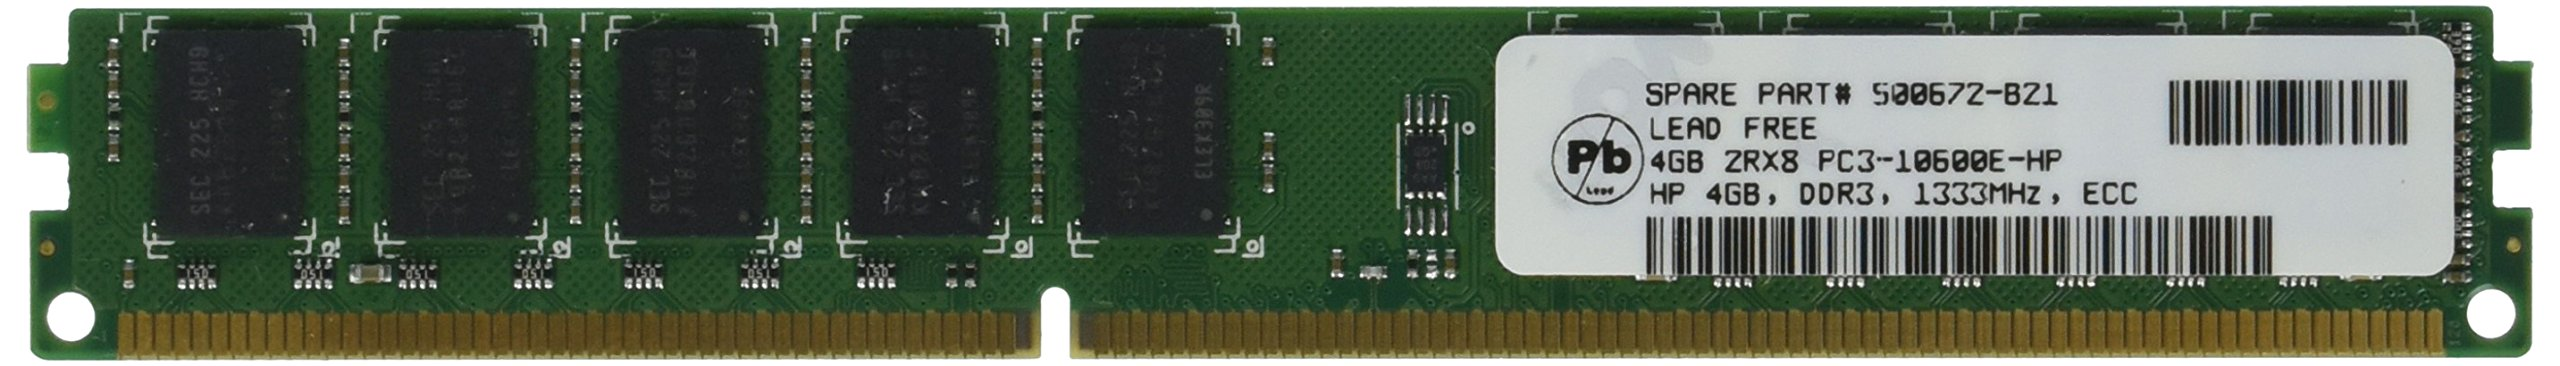 HP 500672-B21 4GB DDR3 SDRAM Memory Module - CM8680 by HP